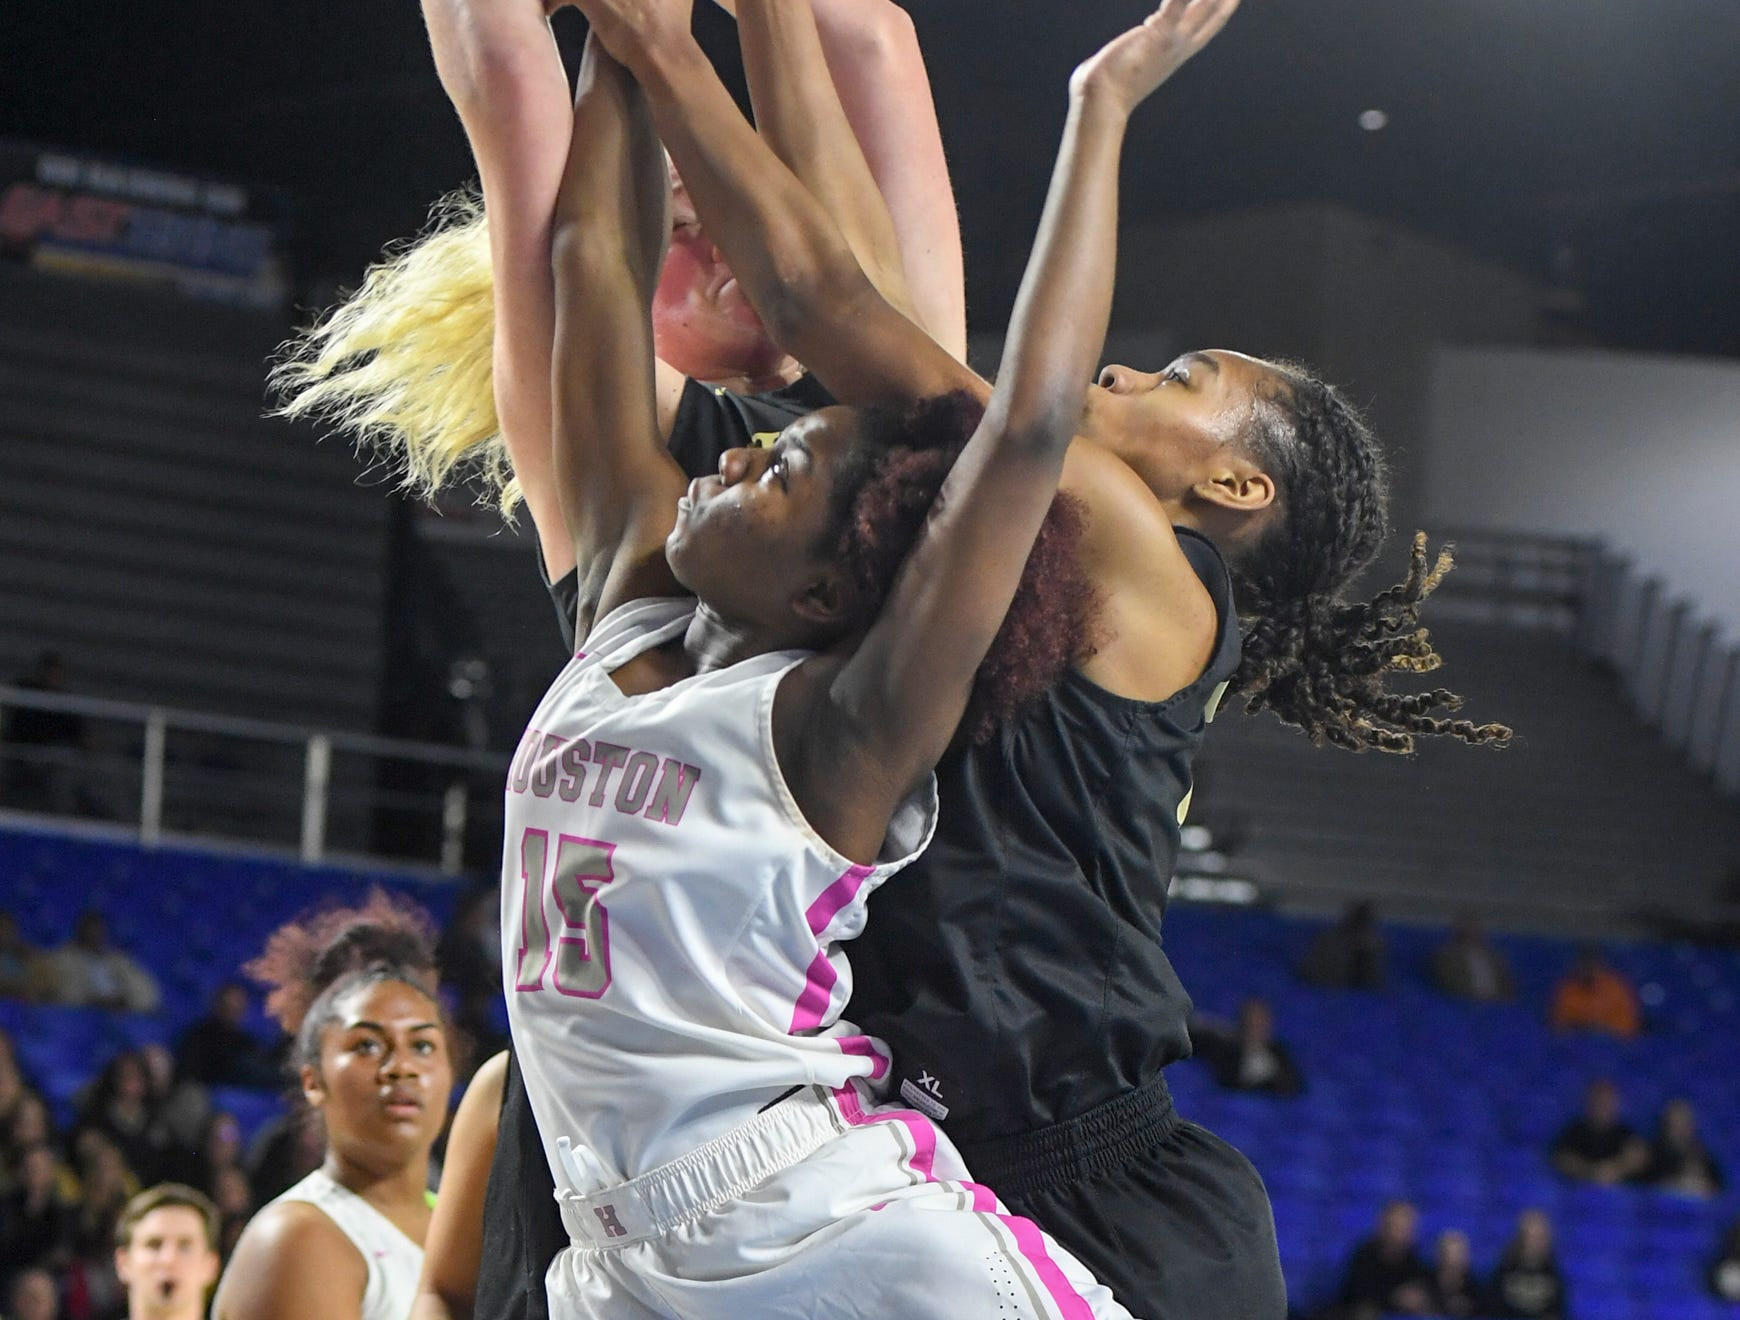 Houston's Zipporah Davis (15) attempts to get a rebound over two Mt. Juliet defenders during their Class AAA quarterfianl game, Wednesday, March 6, 2019, in Murfreesboro.